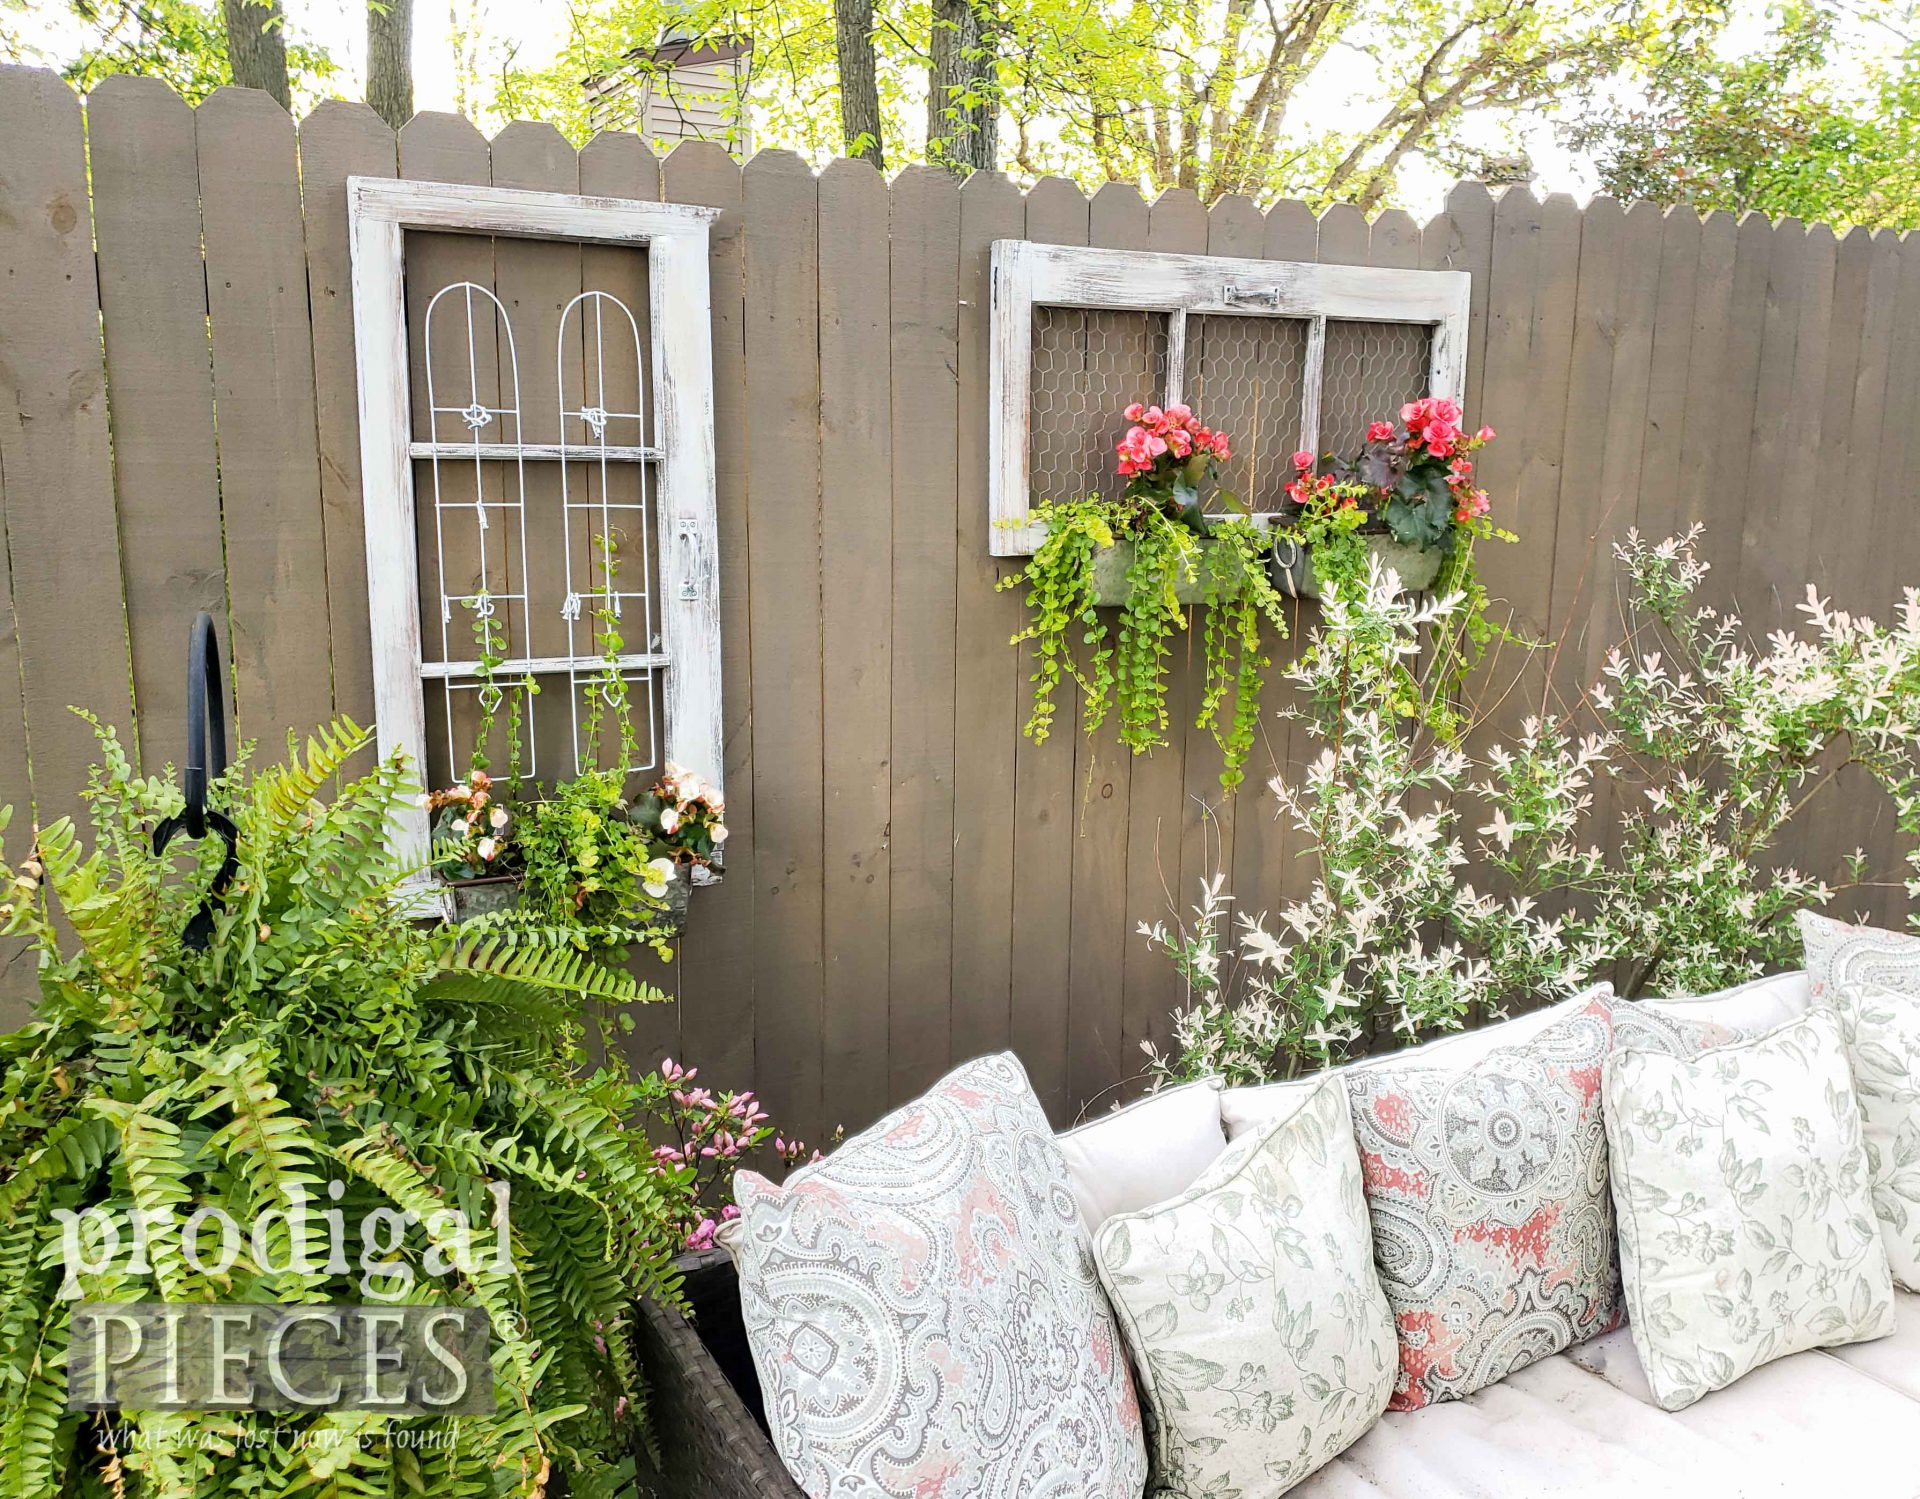 Patio Decor with Upcycled Window Planters by Larissa of Prodigal Pieces | prodigalpieces.com #prodigalpieces #home #homedecor #garden #farmhouse #cottage